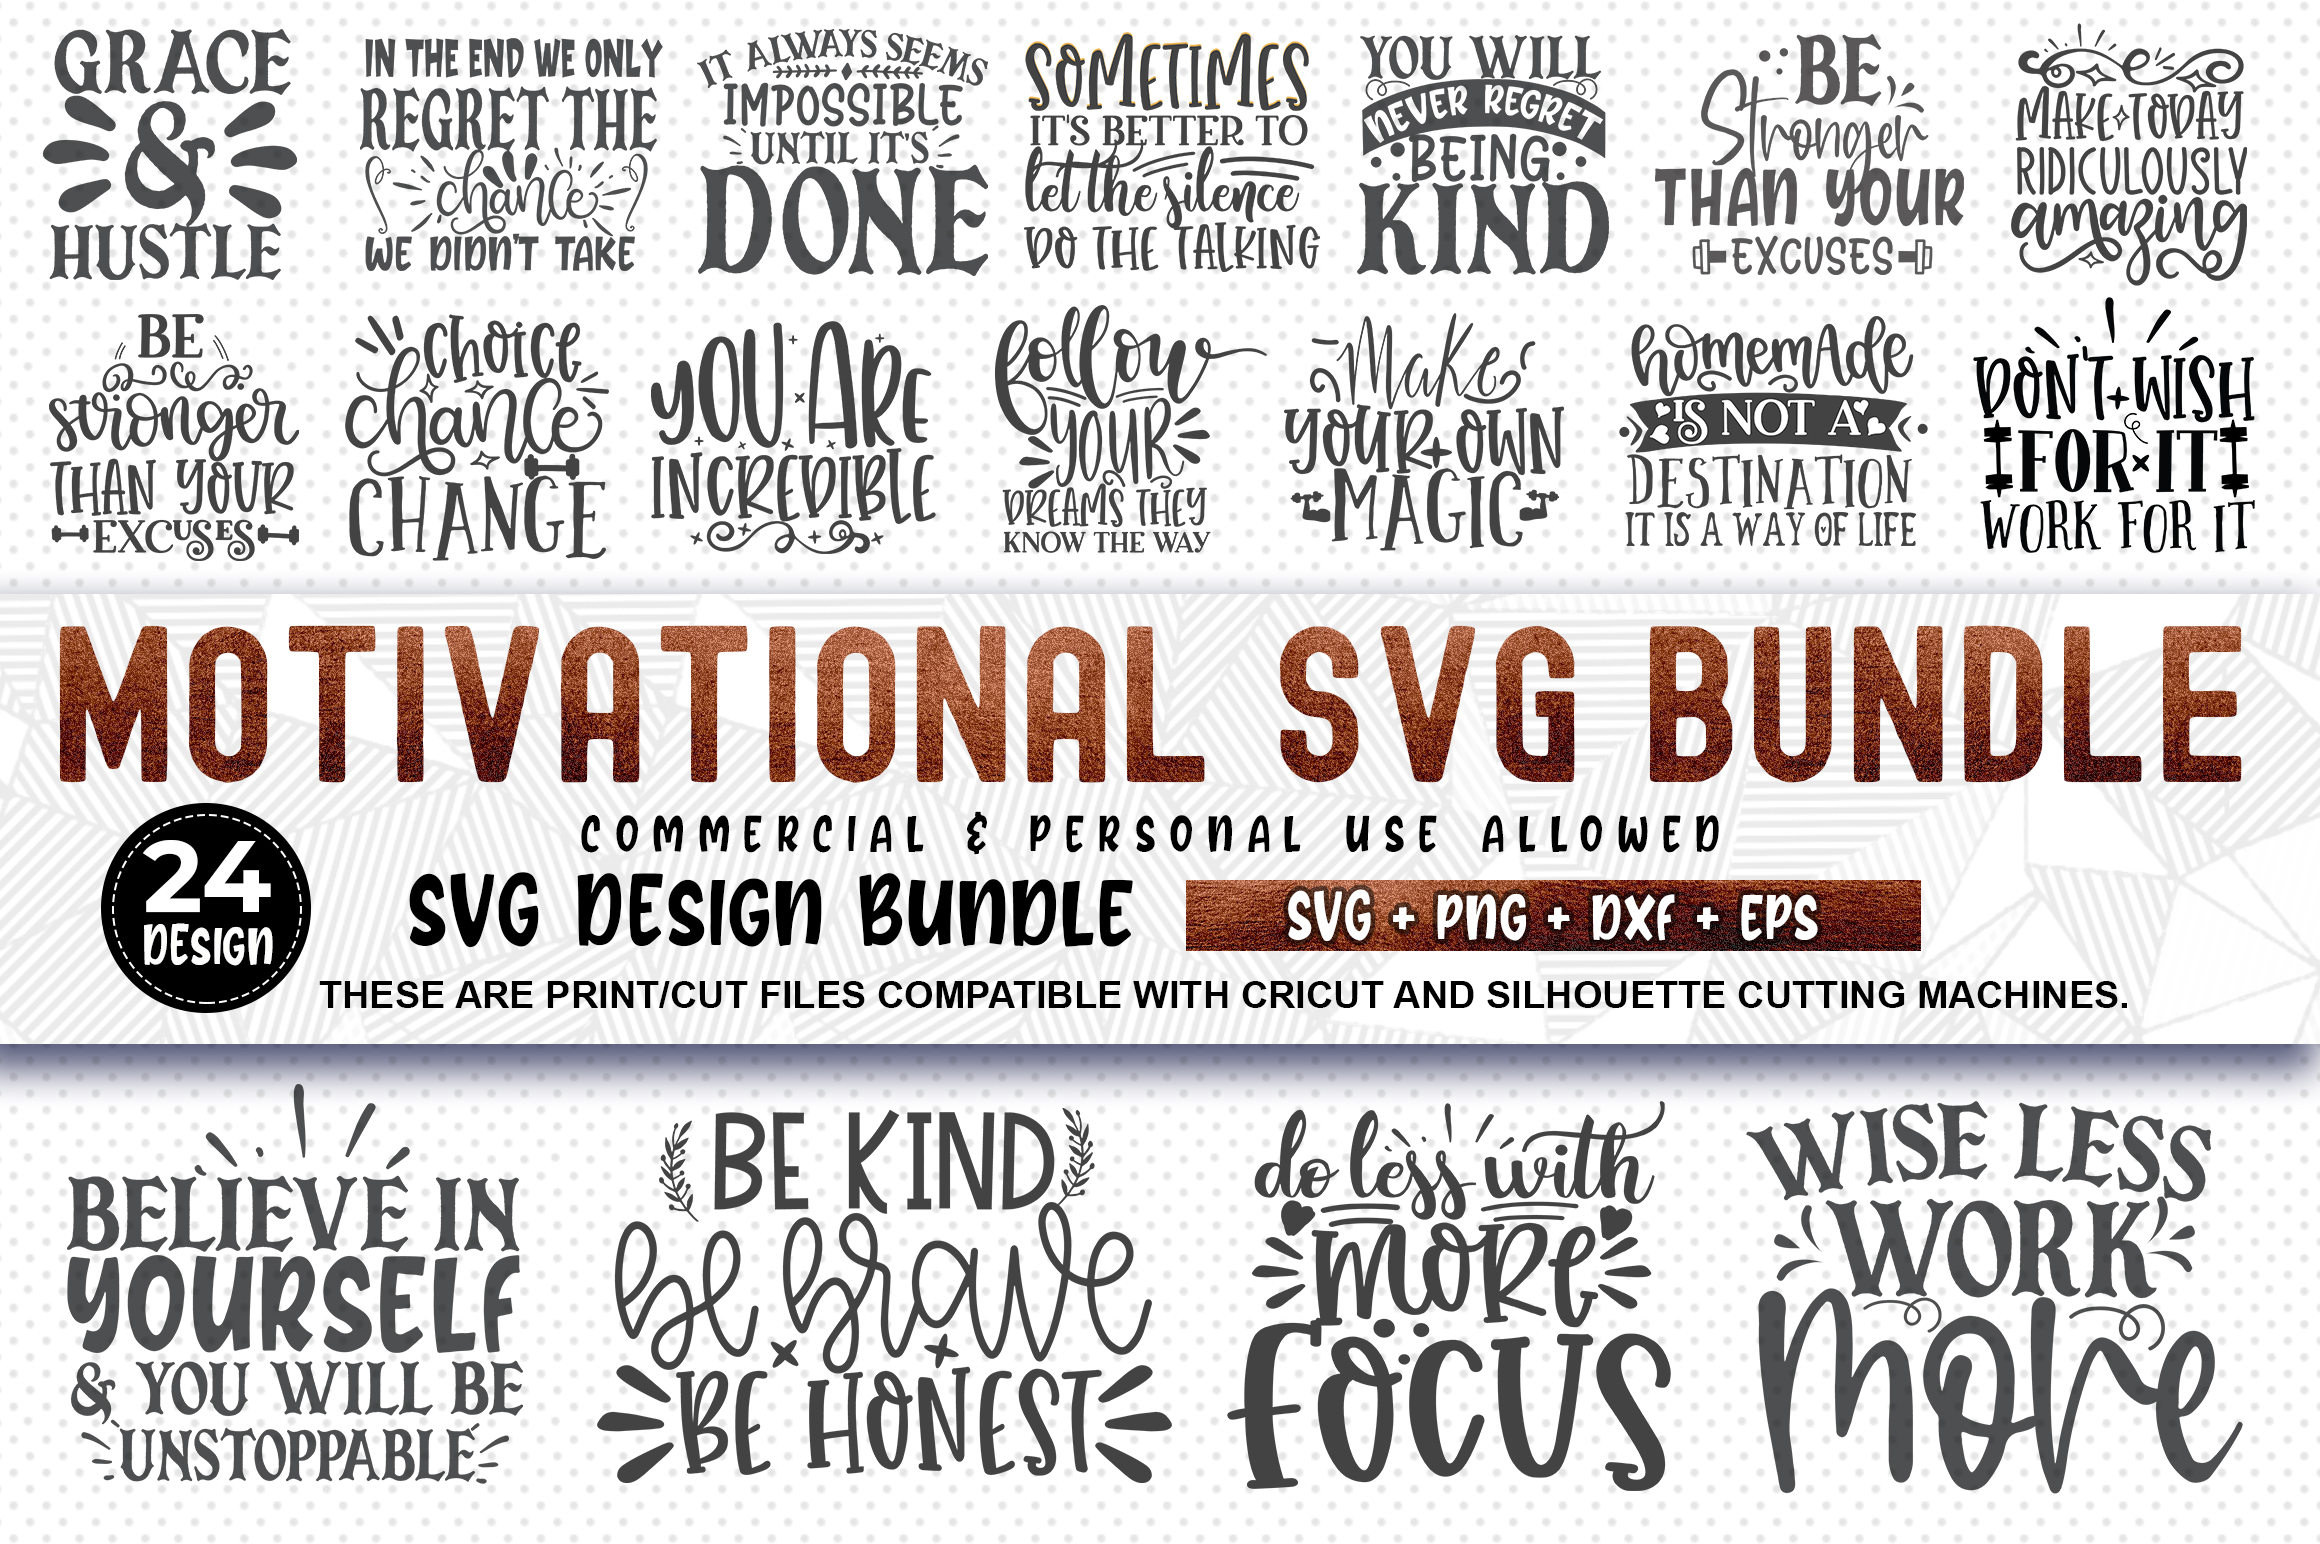 510 SVG DESIGN THE MIGHTY BUNDLE |32 DIFFERENT BUNDLES example image 16